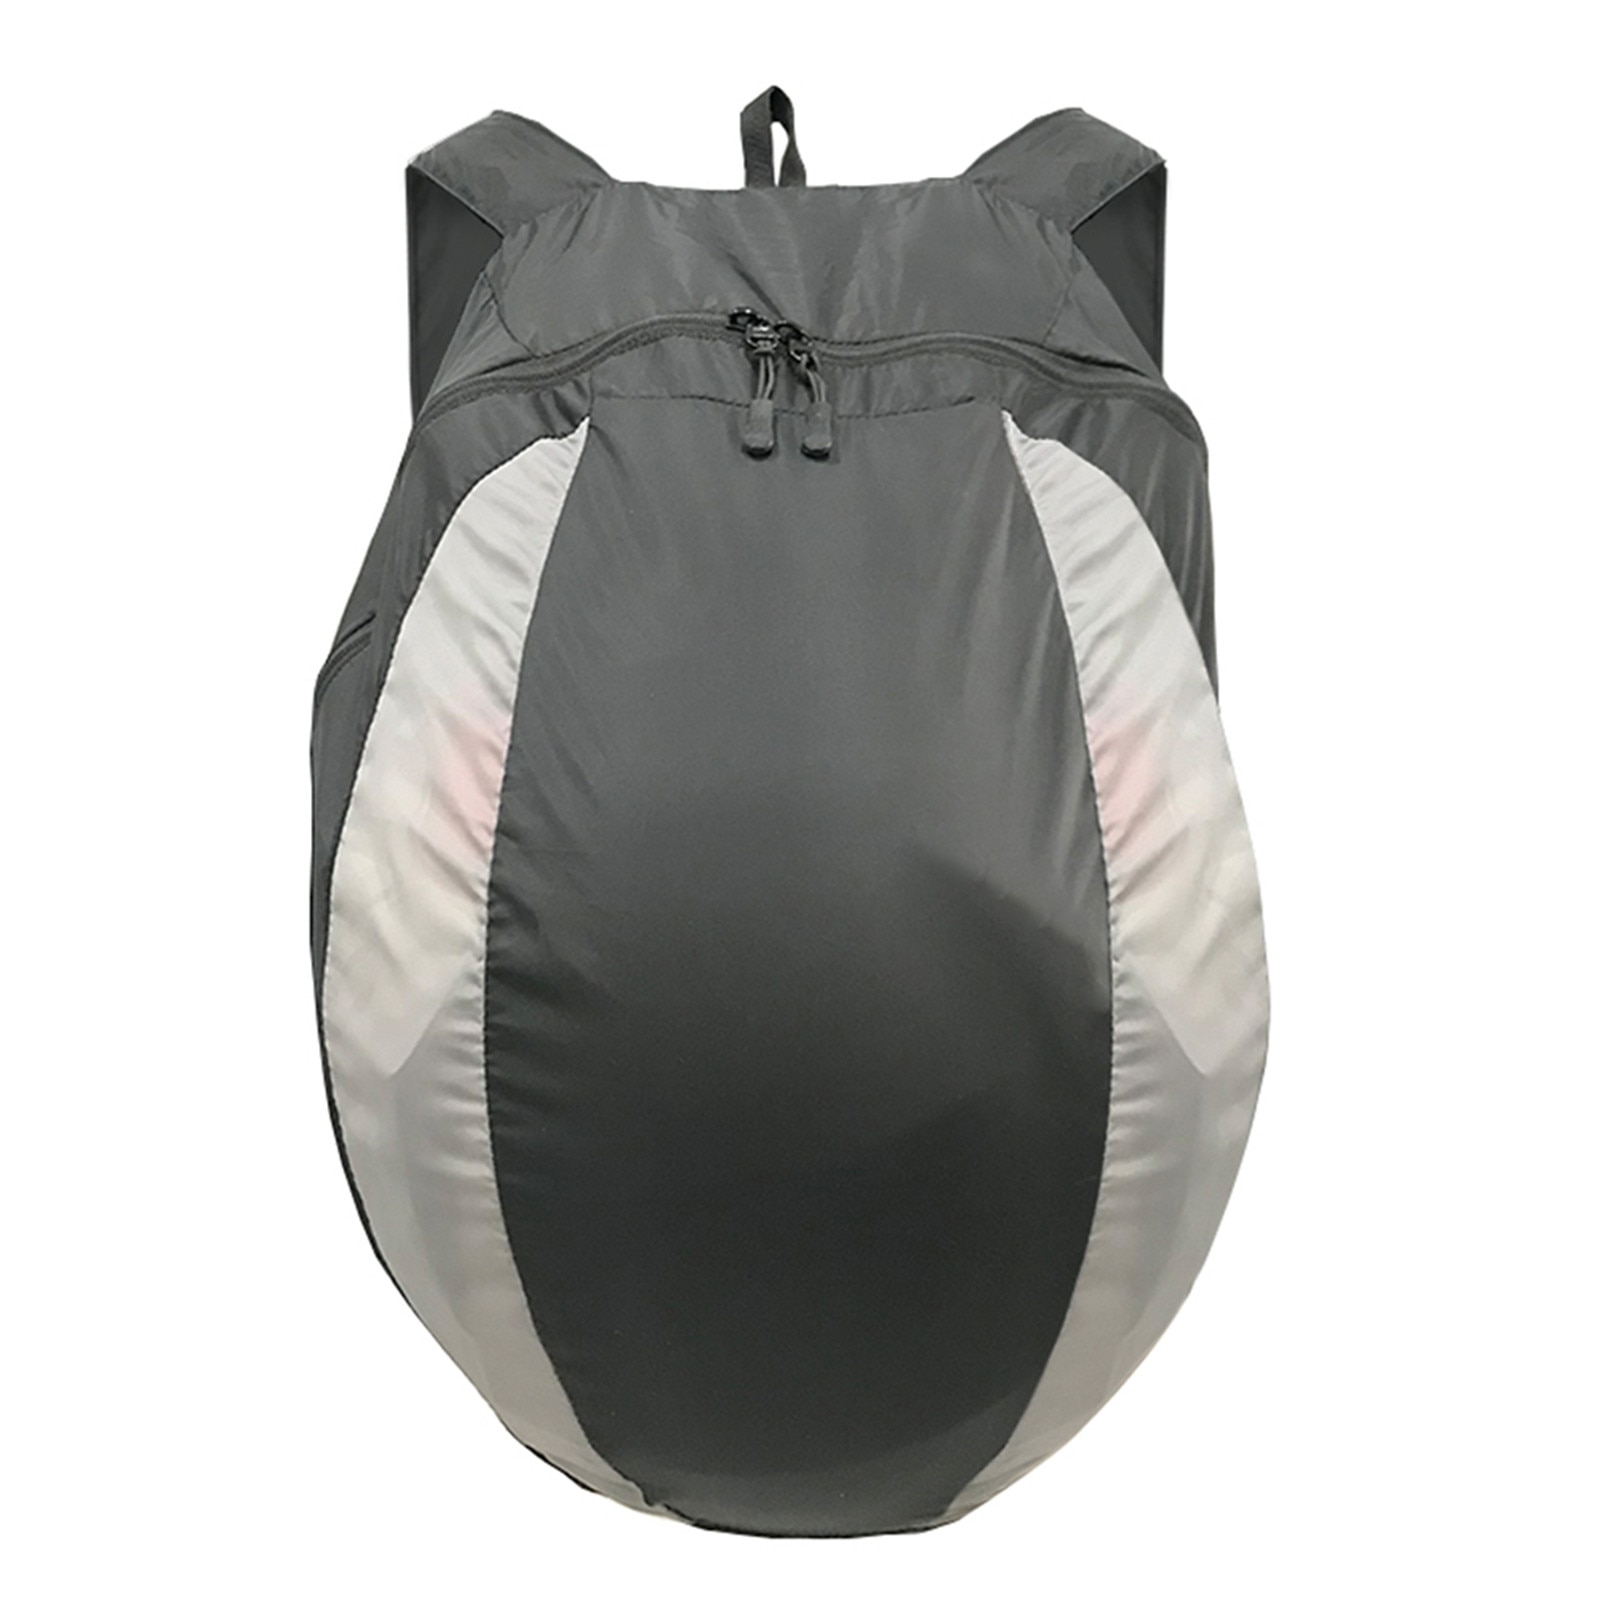 28L Motorcycle Seat Pack Travel Backpack Sport Bag for Motorcycle Basketball Sneakers Bag Motorcycle Seat Bags riding outdoor